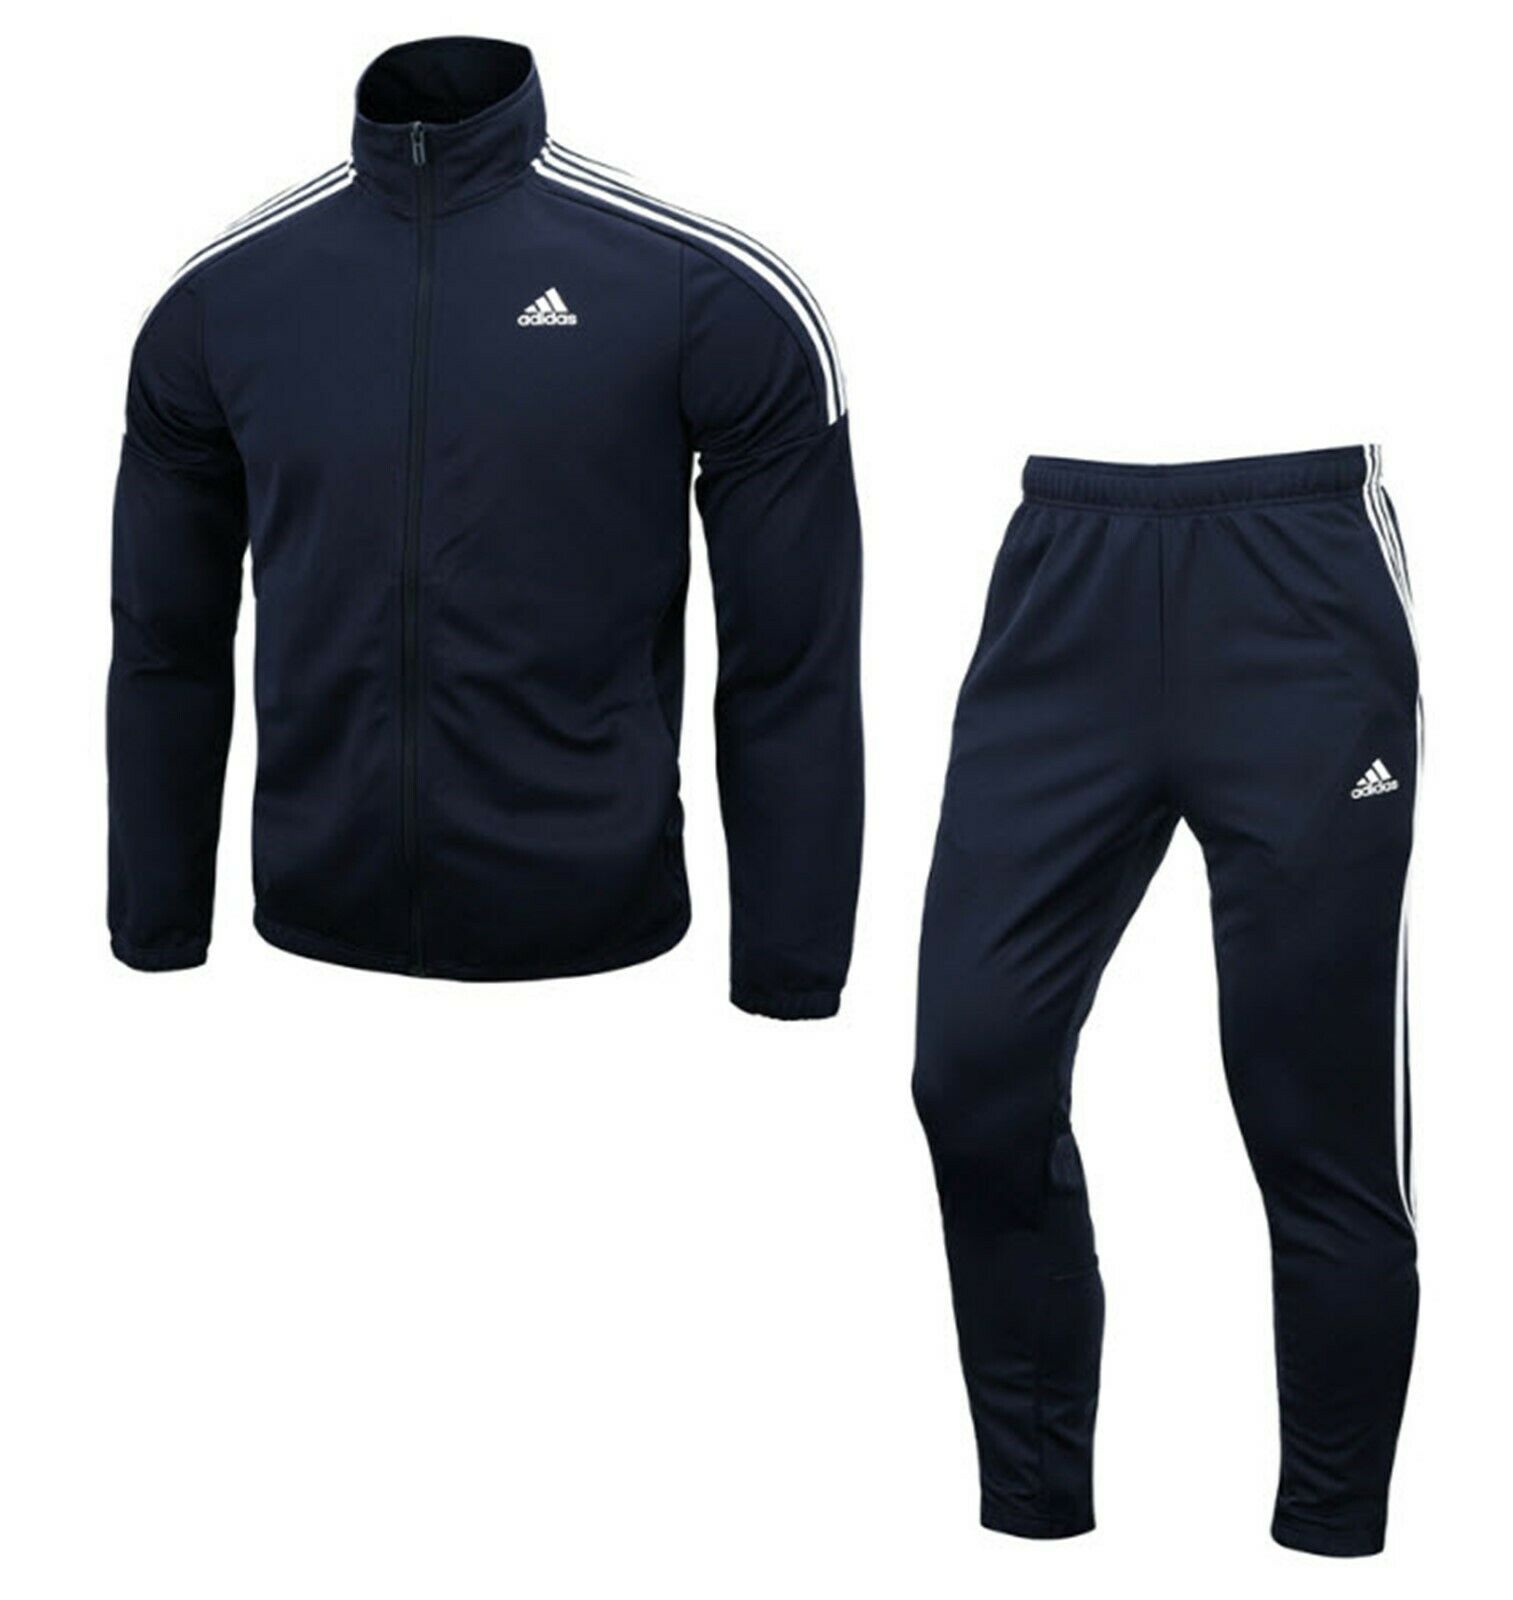 Adidas Men MTS TEAM Track Jackets Training Suit Set Navy GYM Jacket Pant DV2446